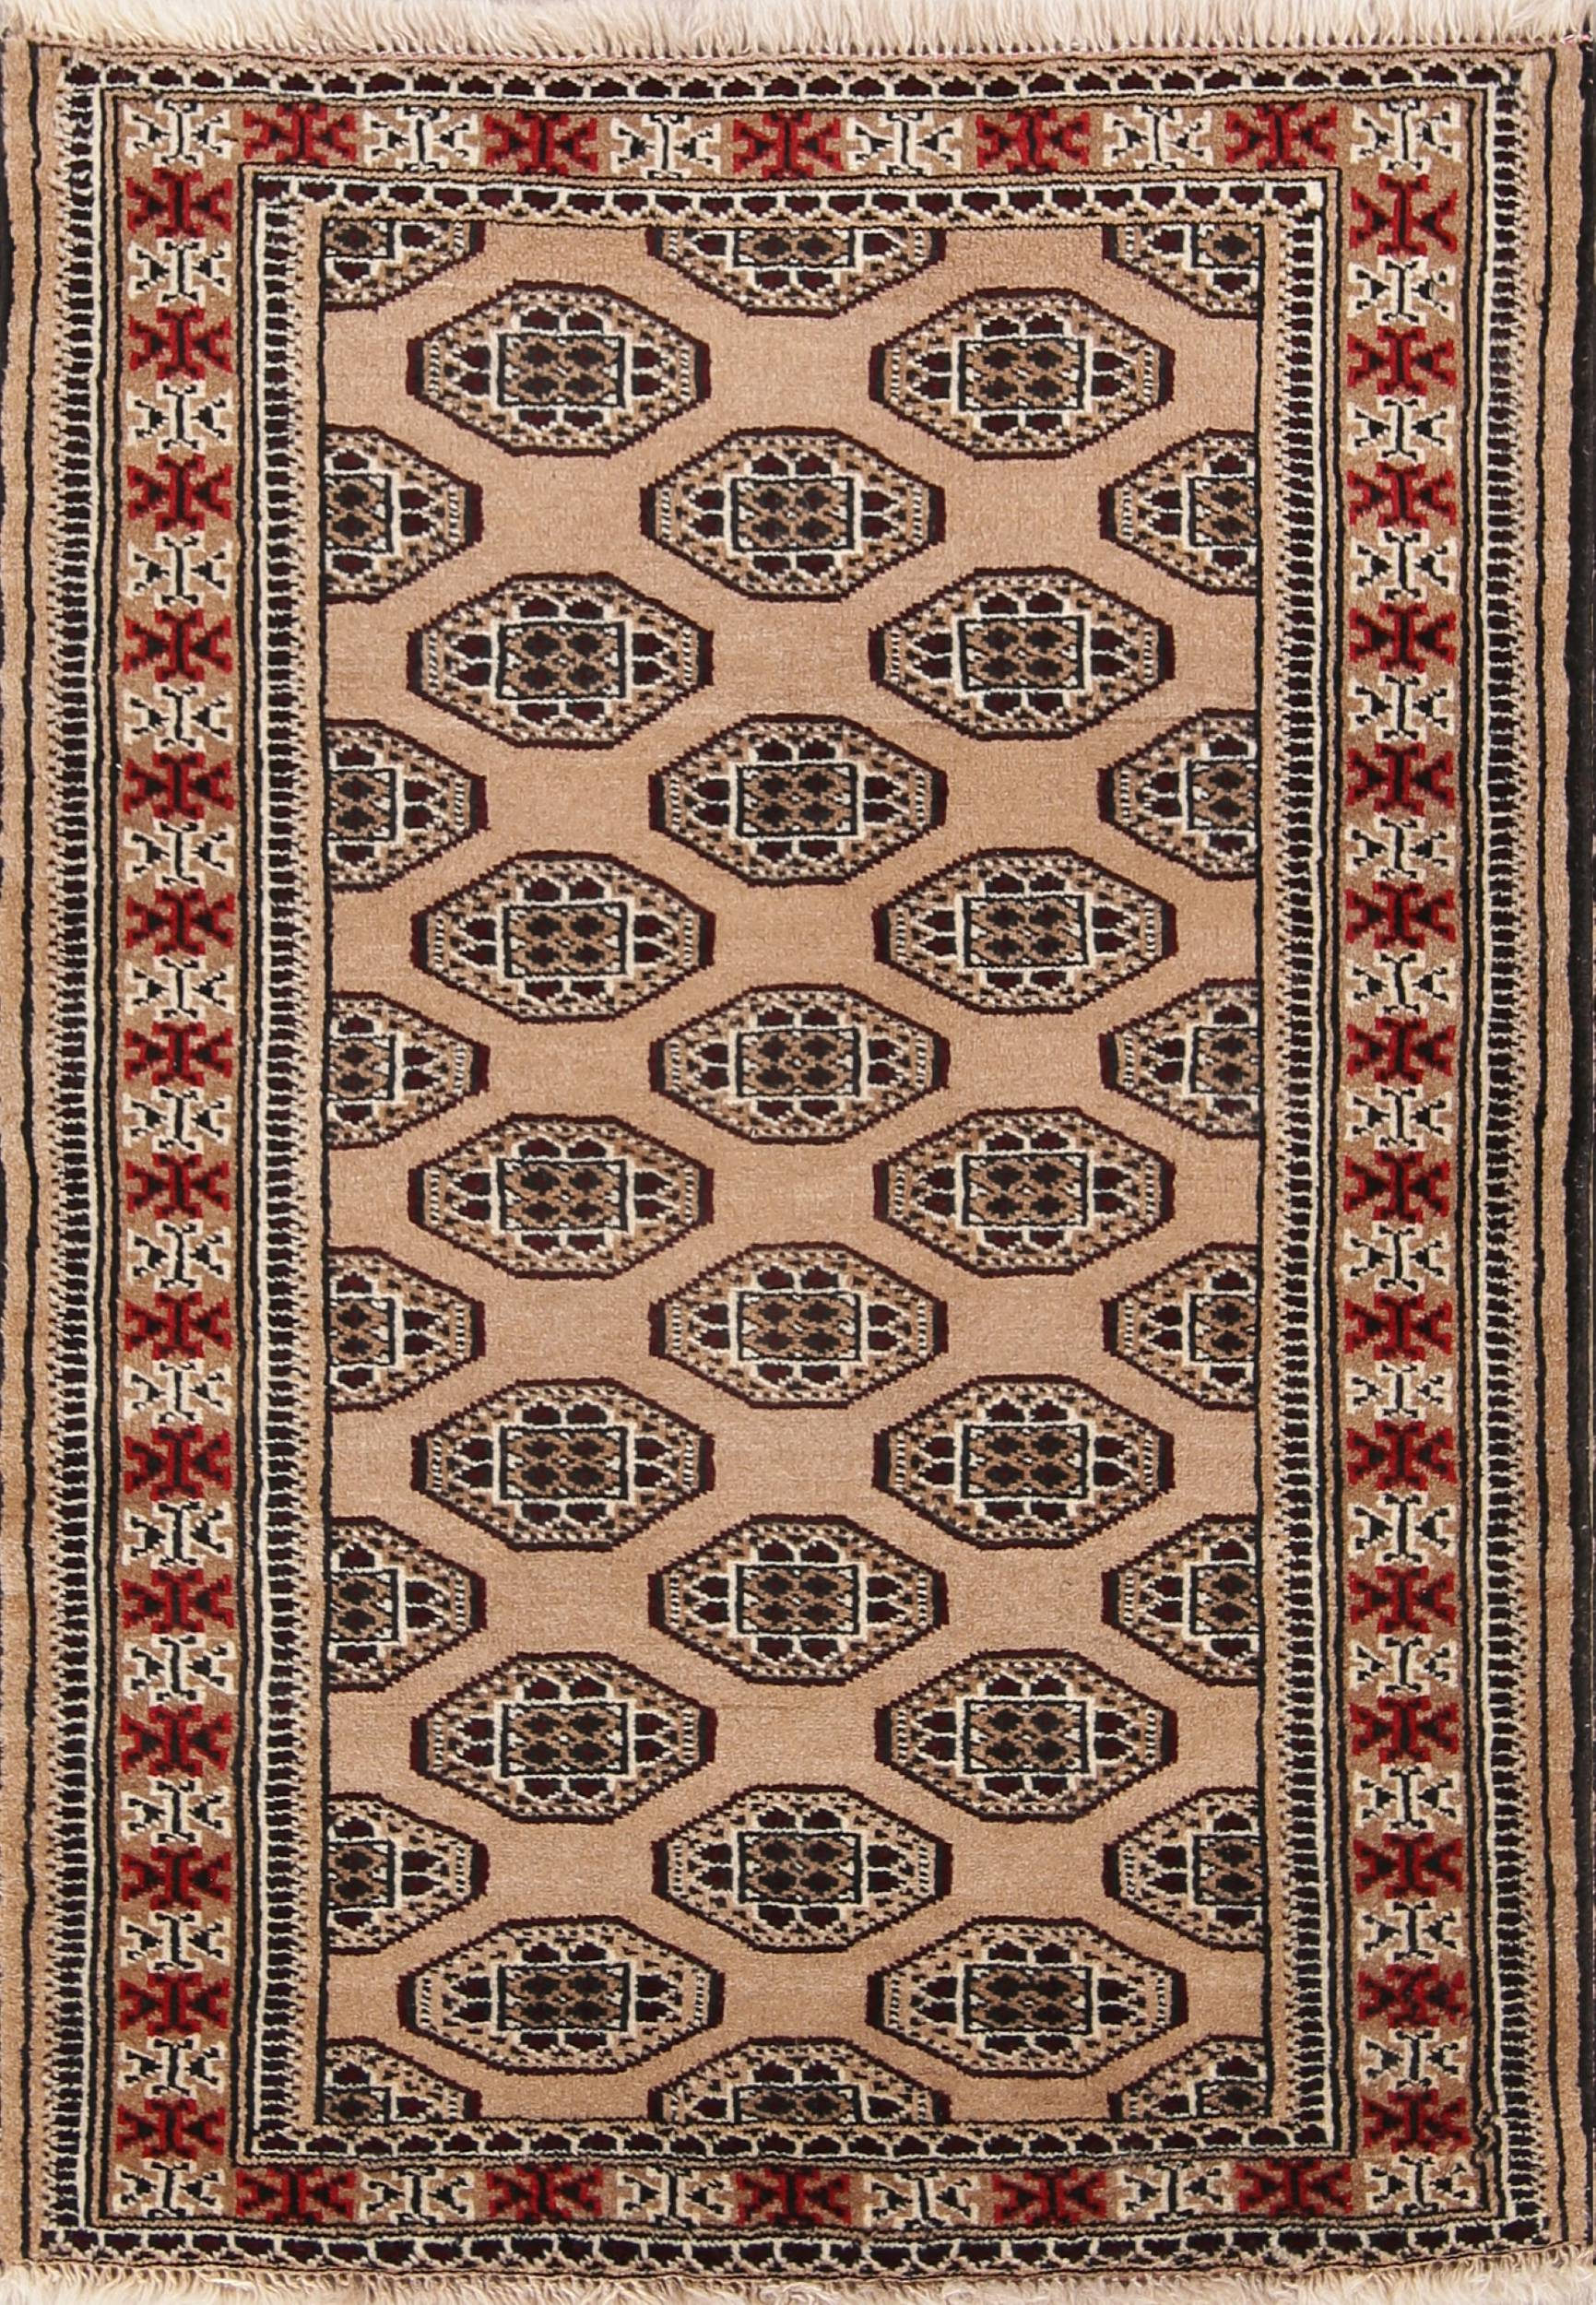 Geometric Beige Brown 3x4 Turkoman Bokhara Persian Area Rug